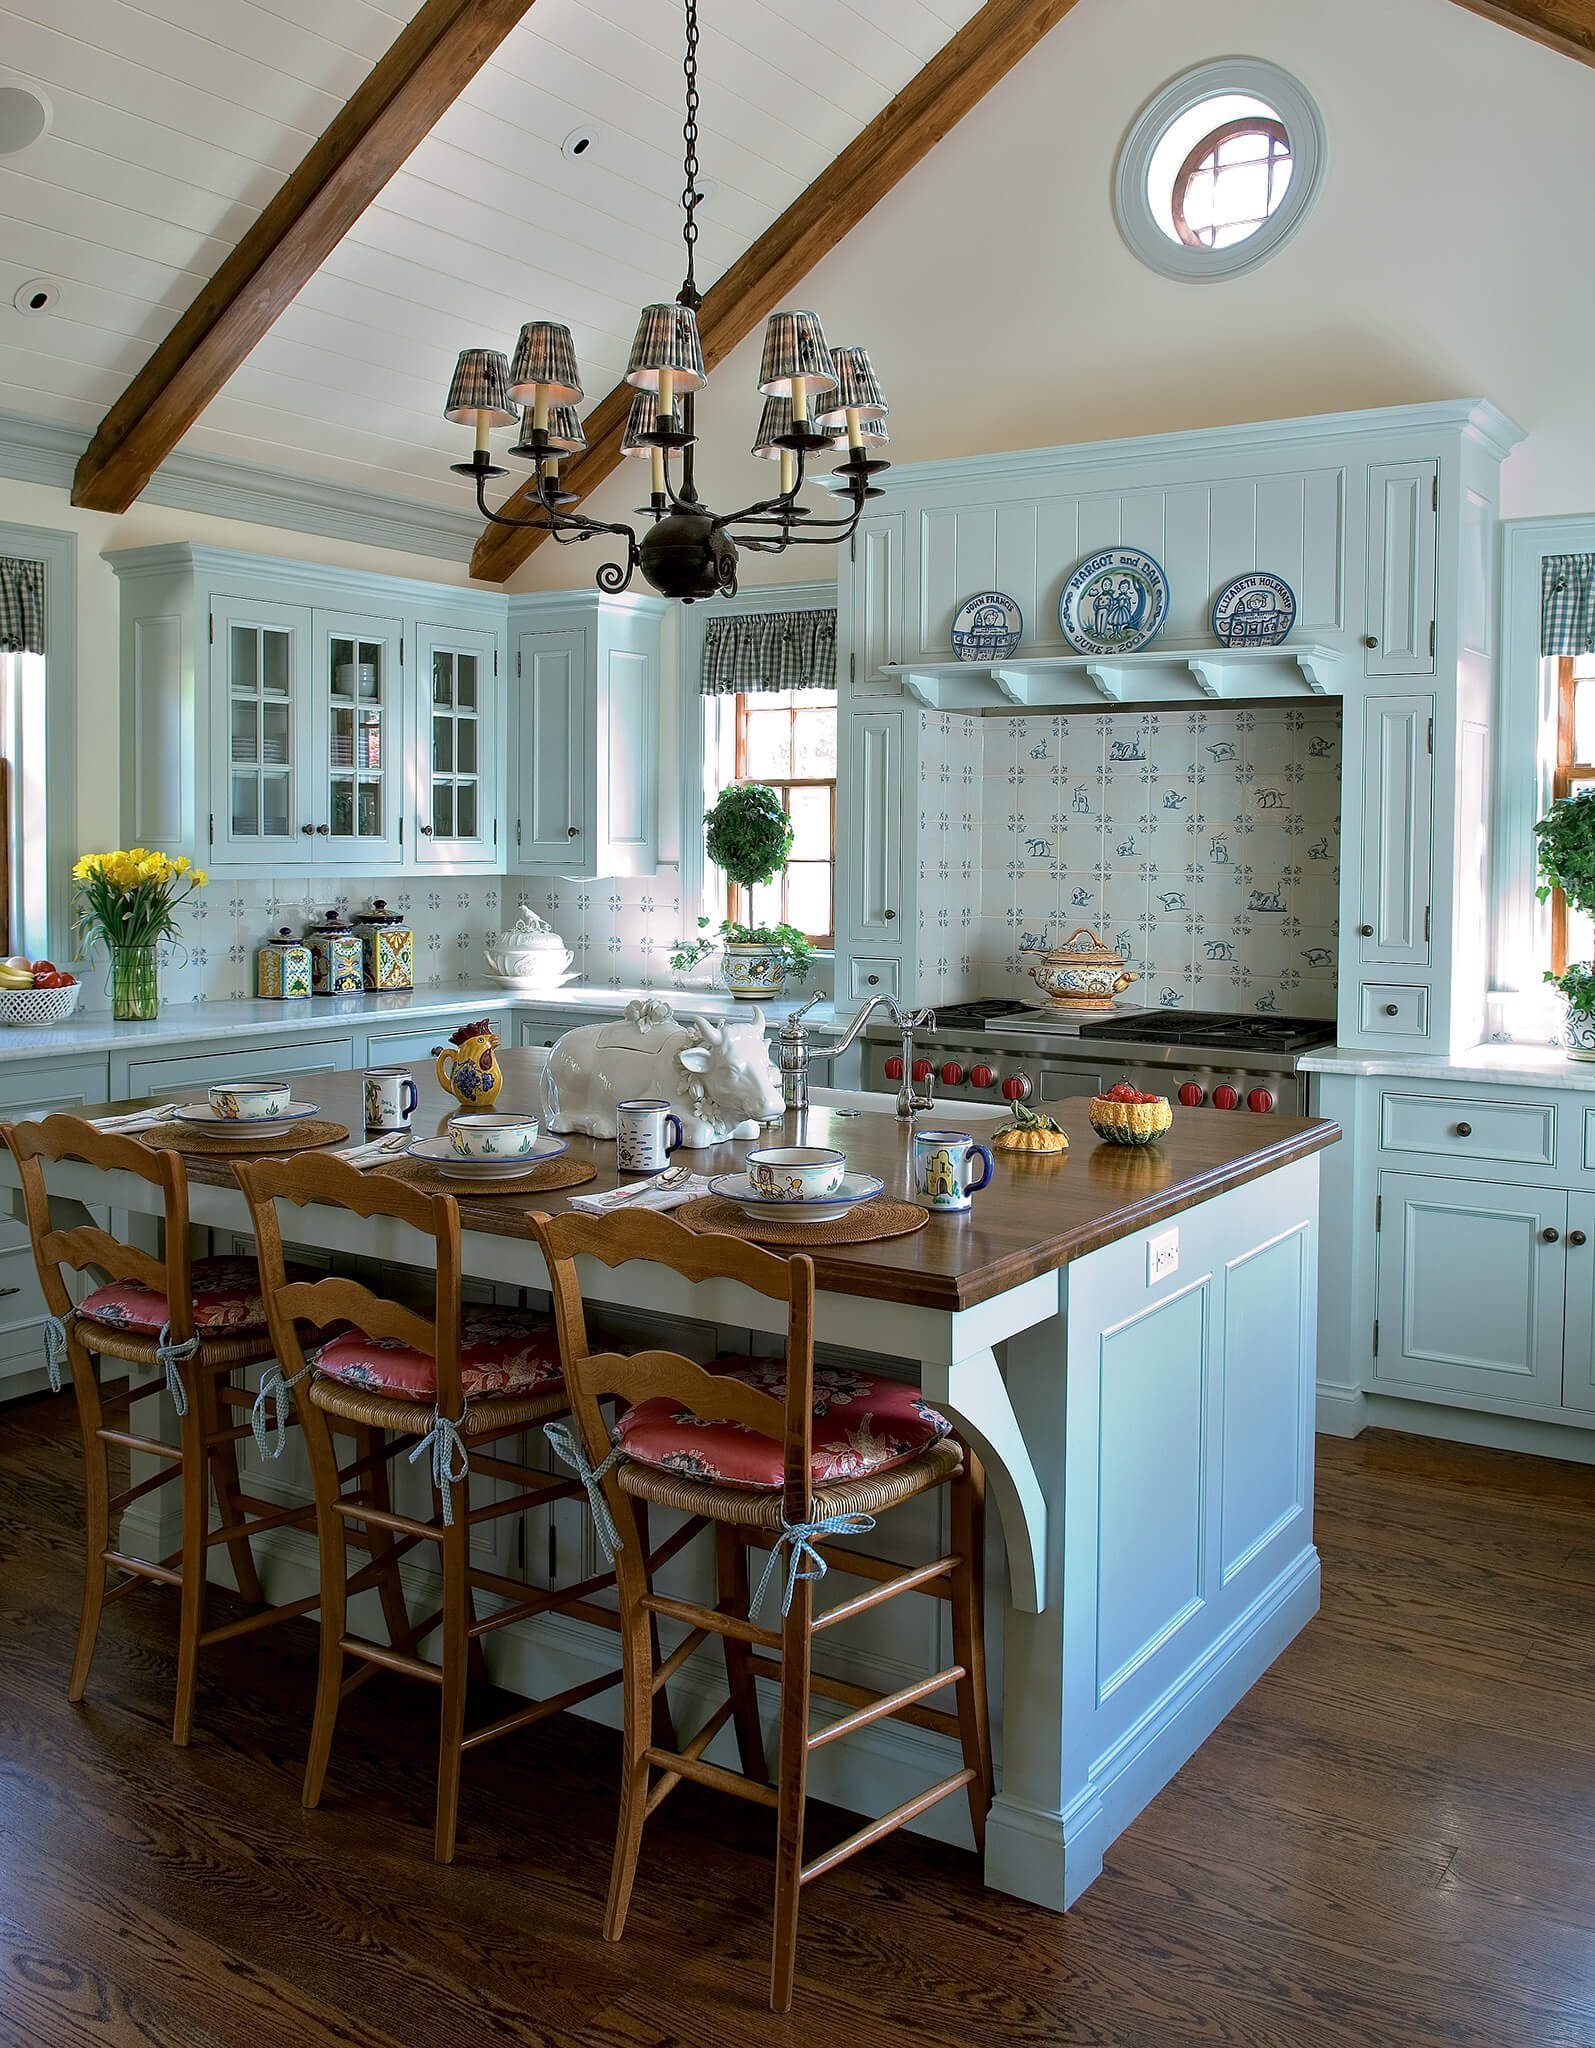 27 Cabinets for the Rustic Kitchen of Your Dreams | Kitchens, Rustic ...